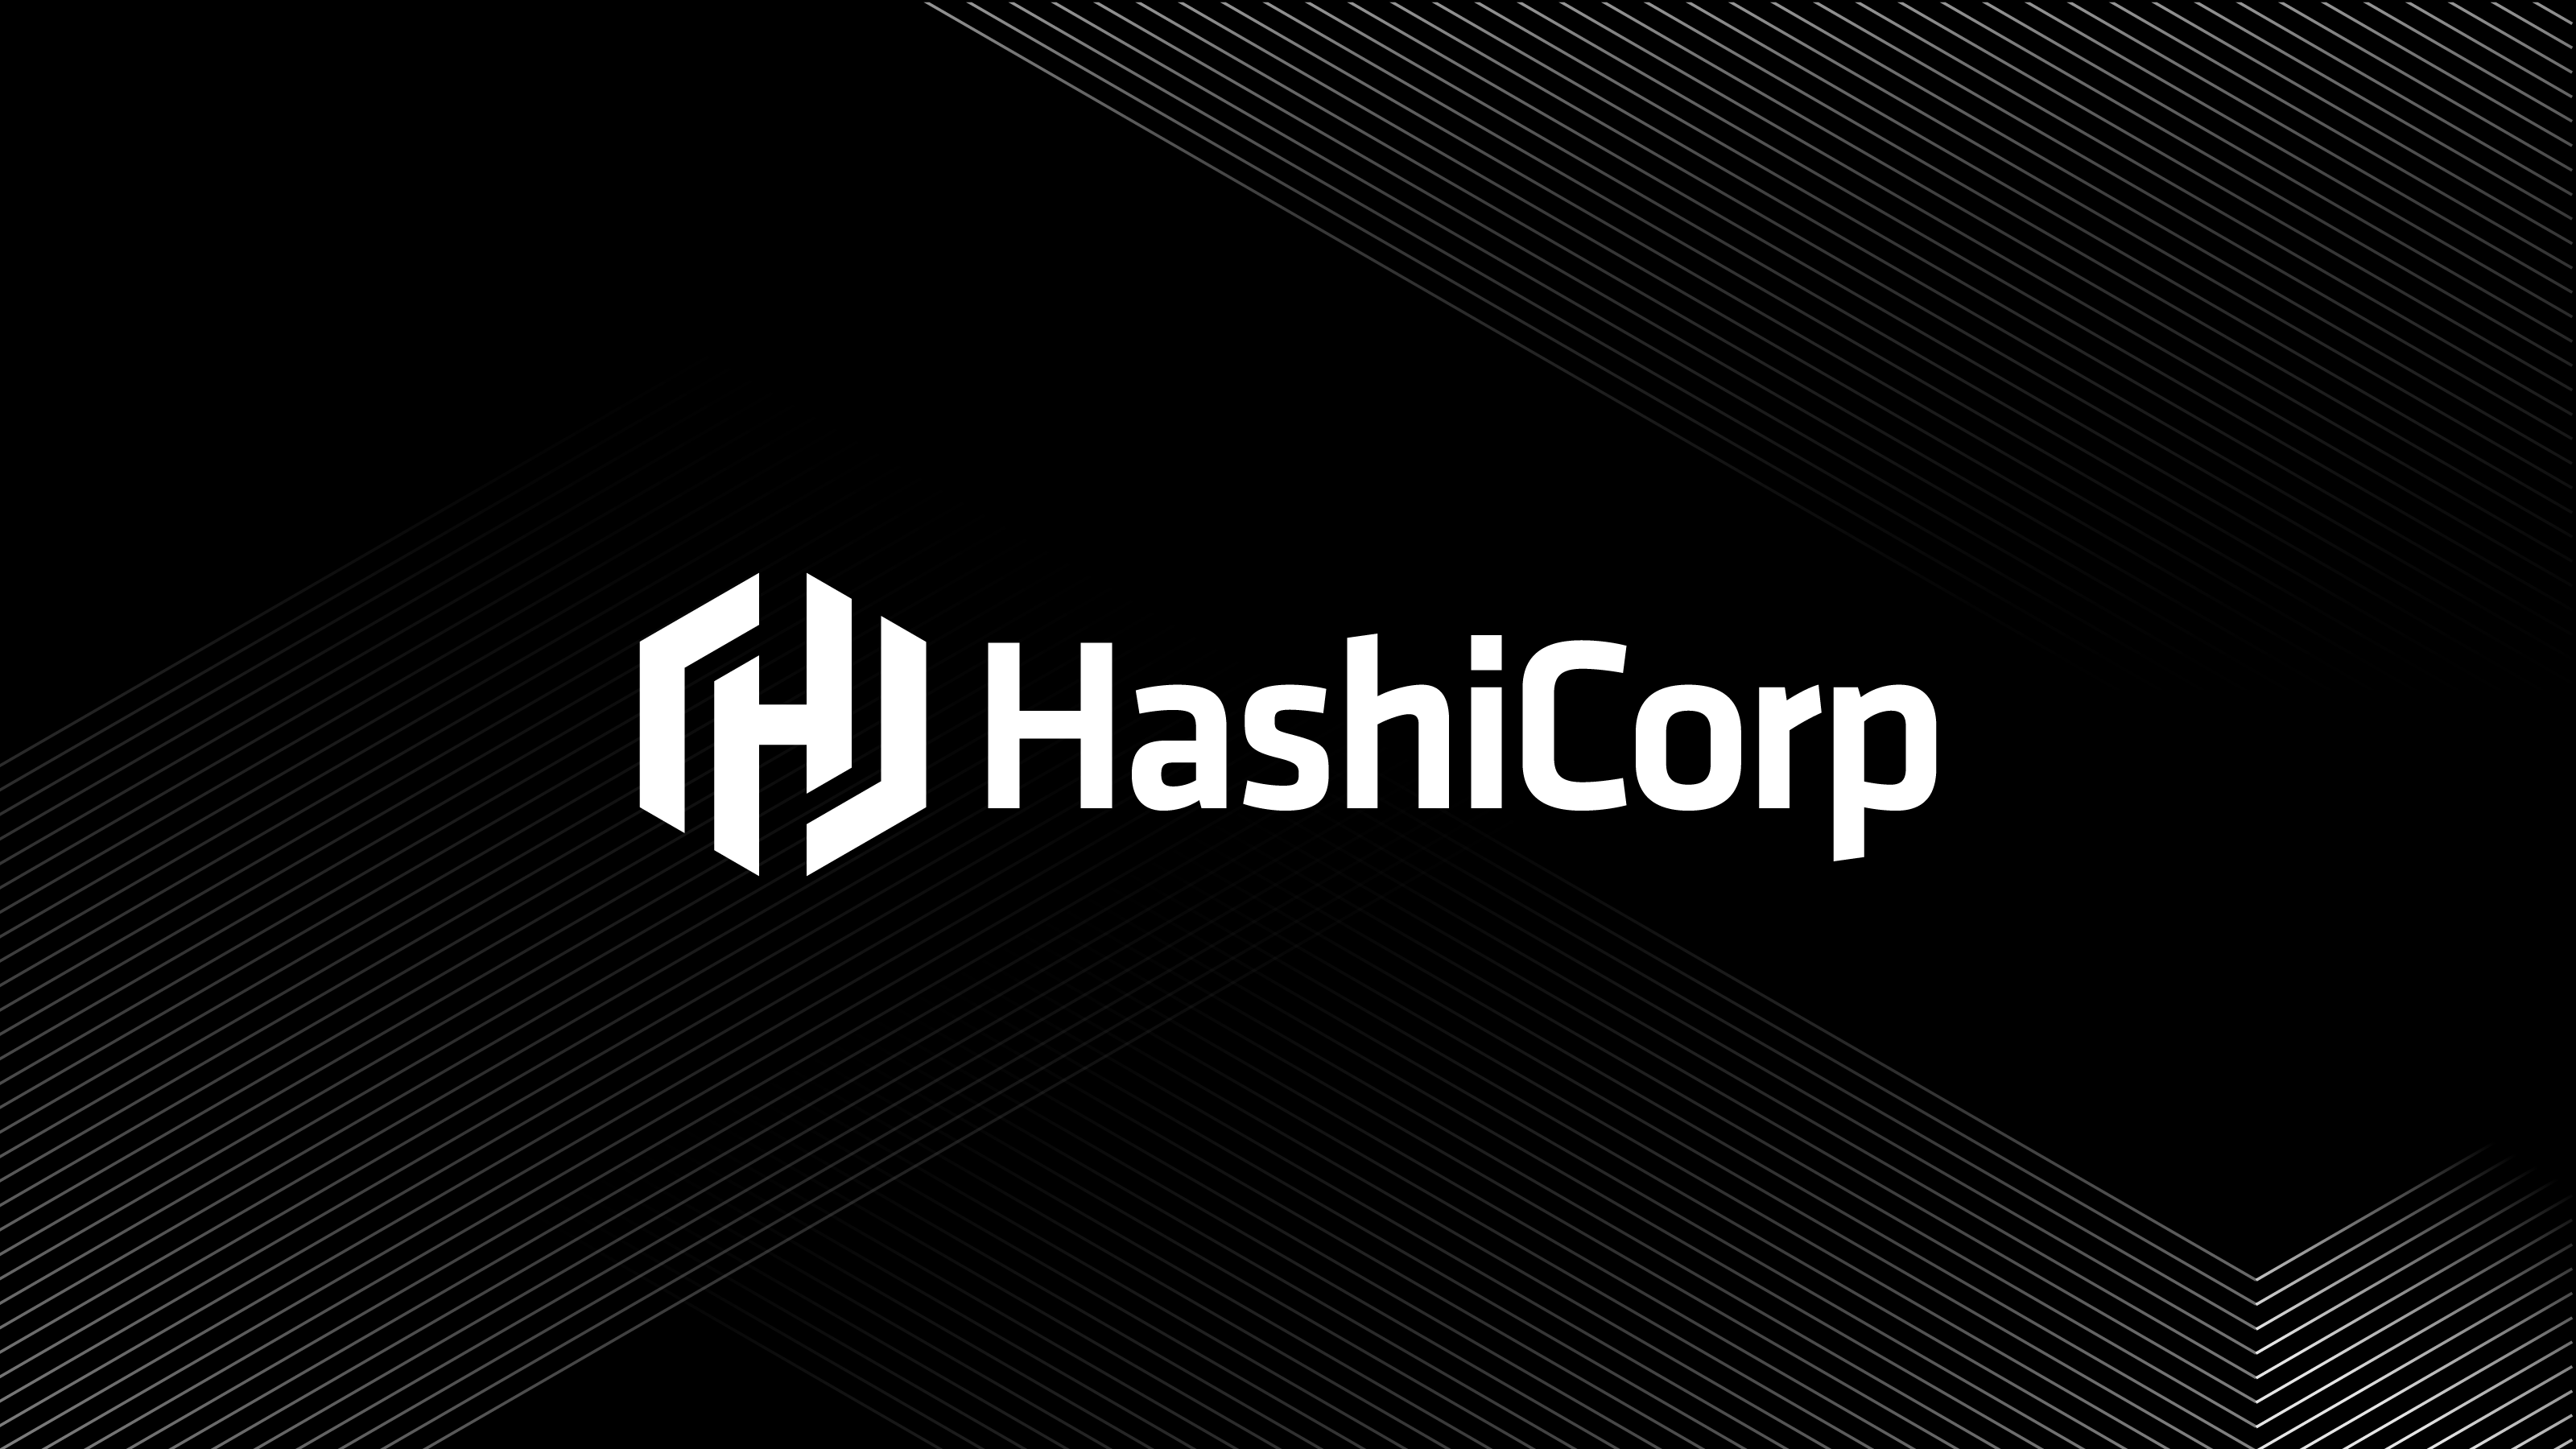 HashiConf 2020 Security Discussion Panel Image